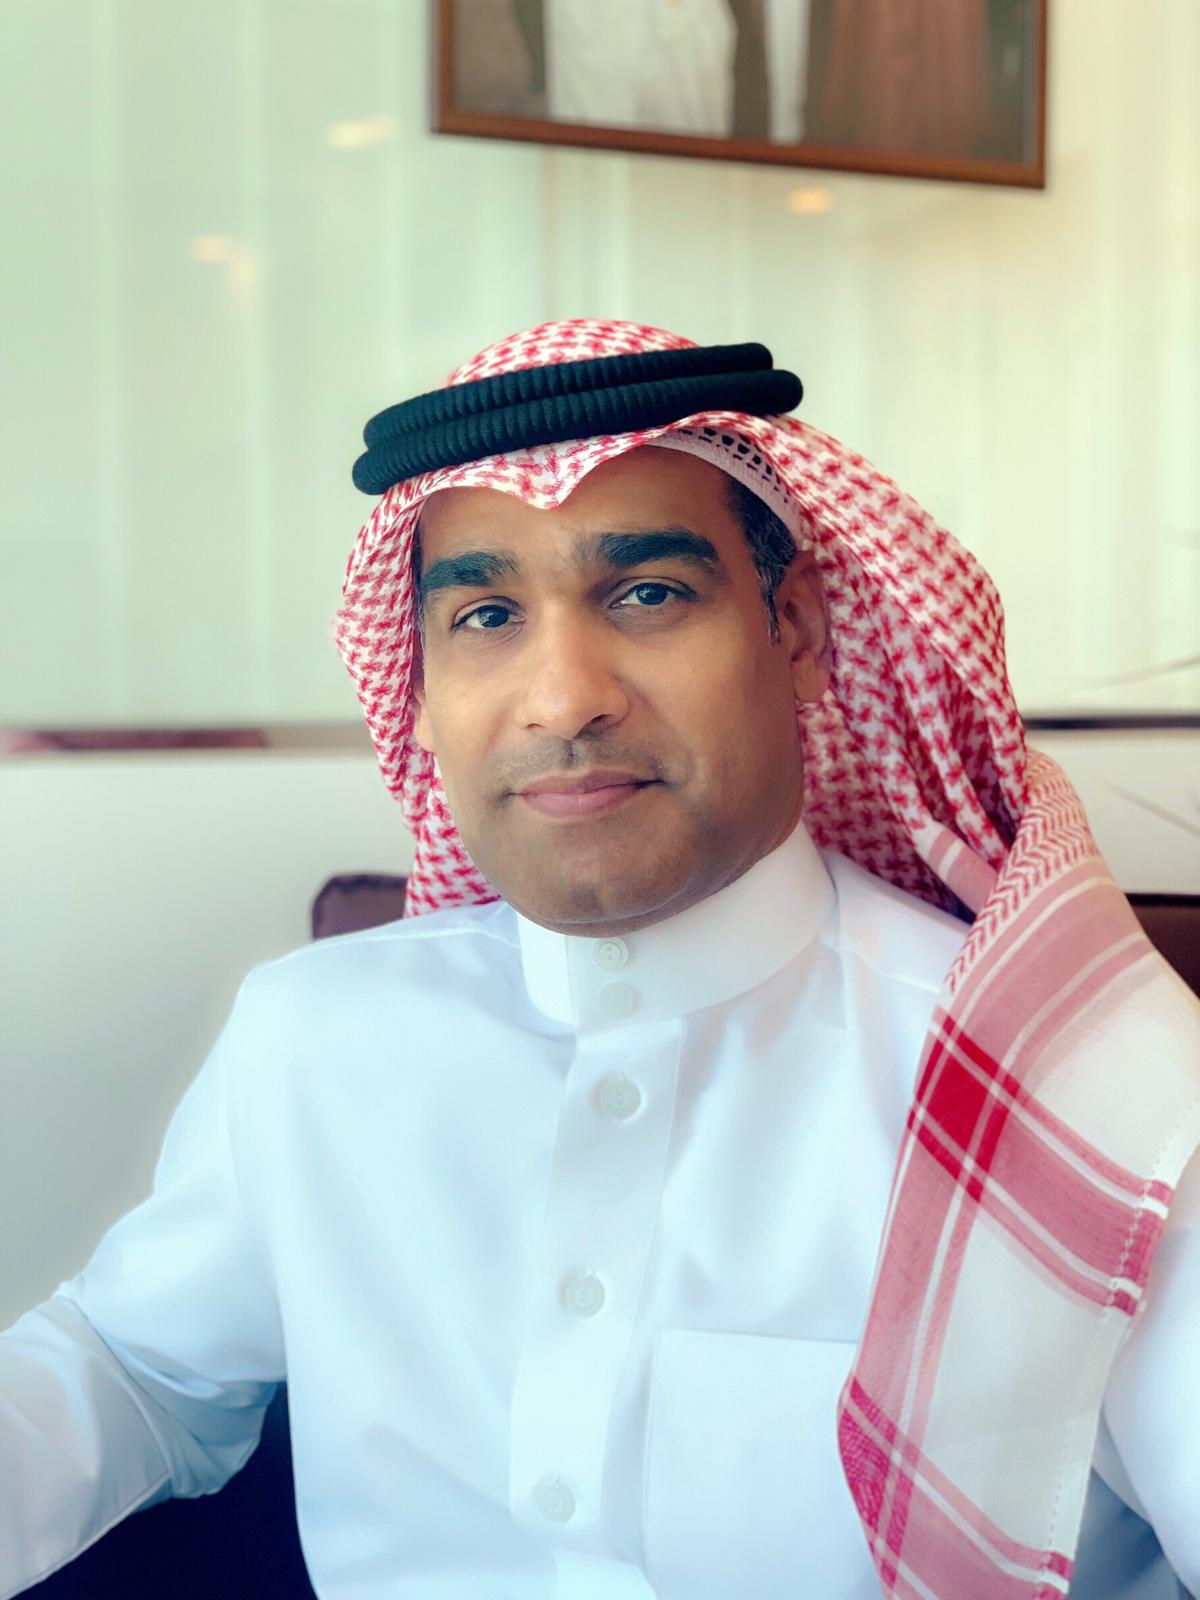 Hesham M. AlAnsari, Managing Director of infrashore